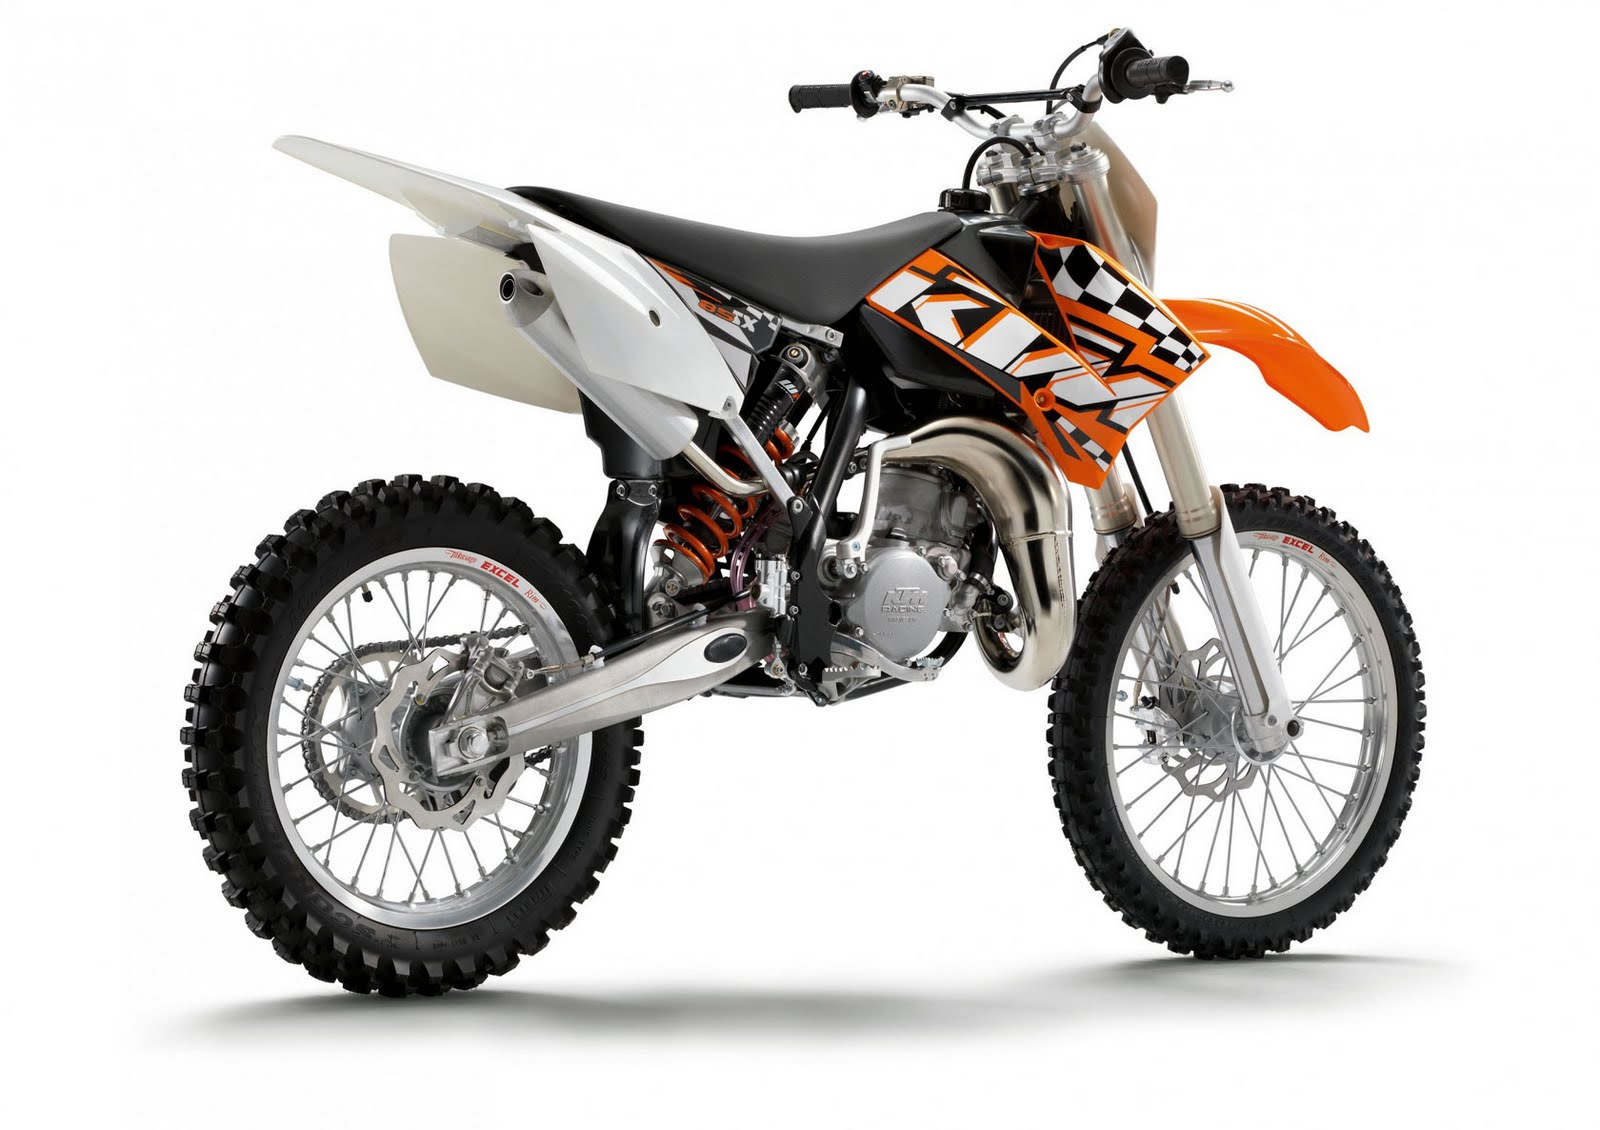 2011 Ktm 85 Sx Specifications And Pictures Latest Gadget